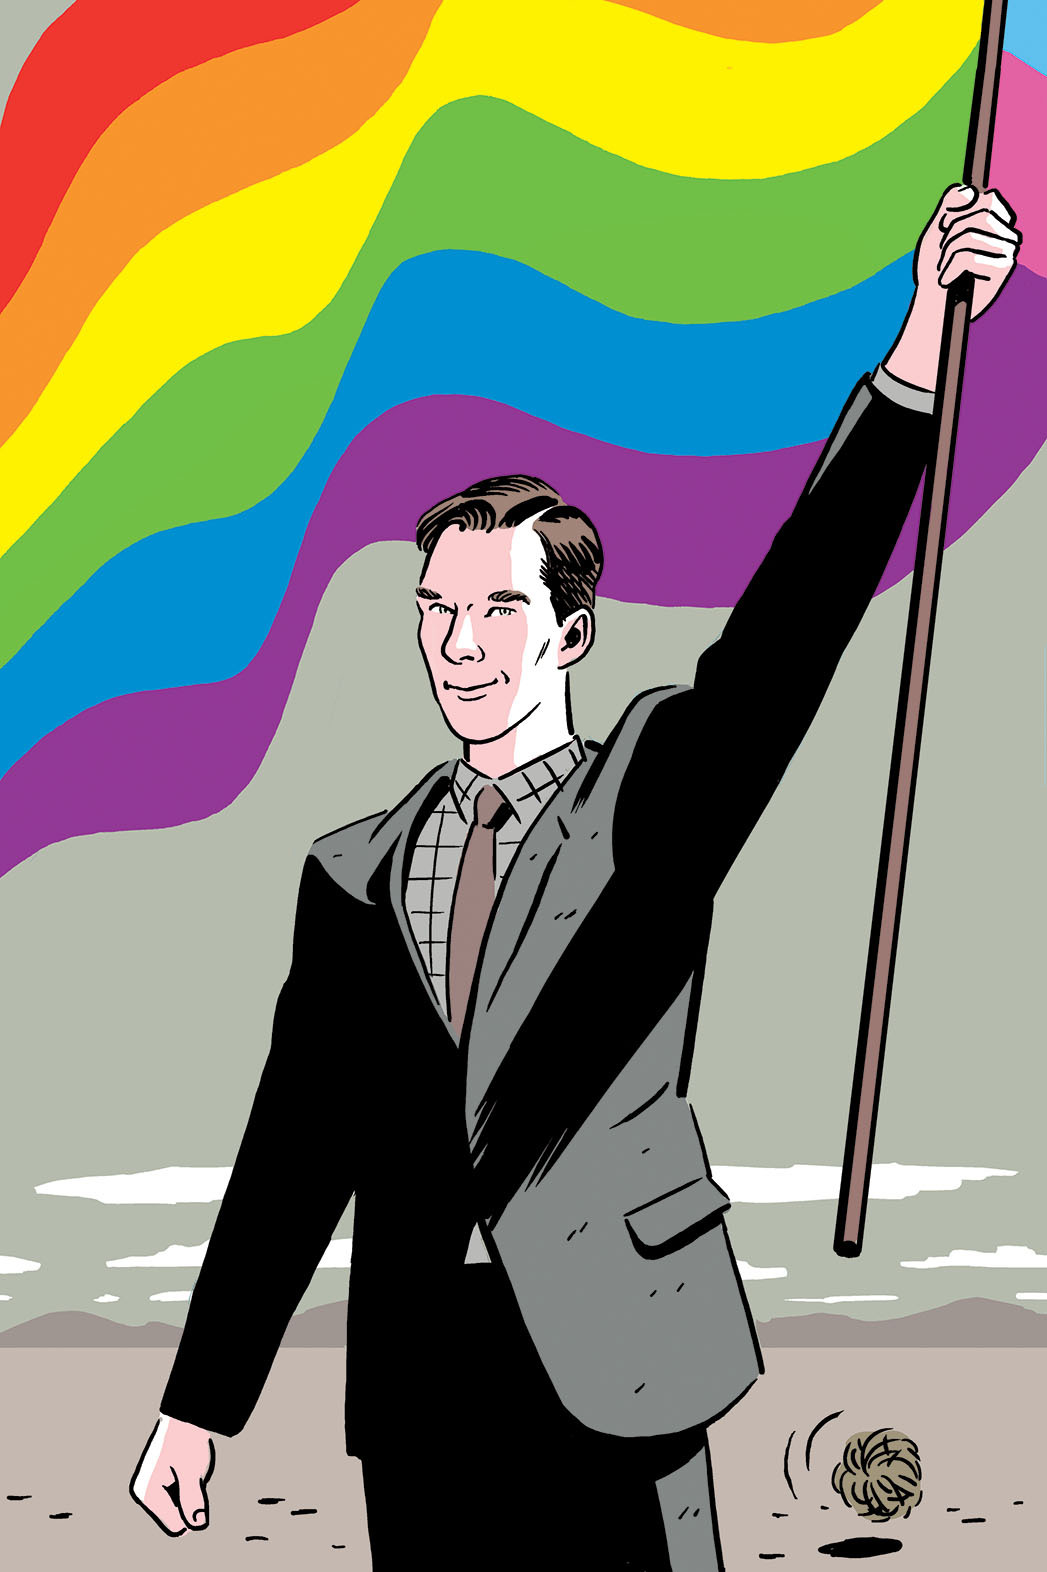 benedict-1976:karin-woywod:Oscars: 'The Imitation Game' Finally Plays the Gay Card2015 01 28 published - The Hollywood Reporter - Illustration by R Kikuo JohnsonOpen in new tab / window for              [1047 x 1572 pixels]              !Source  C'est original :)